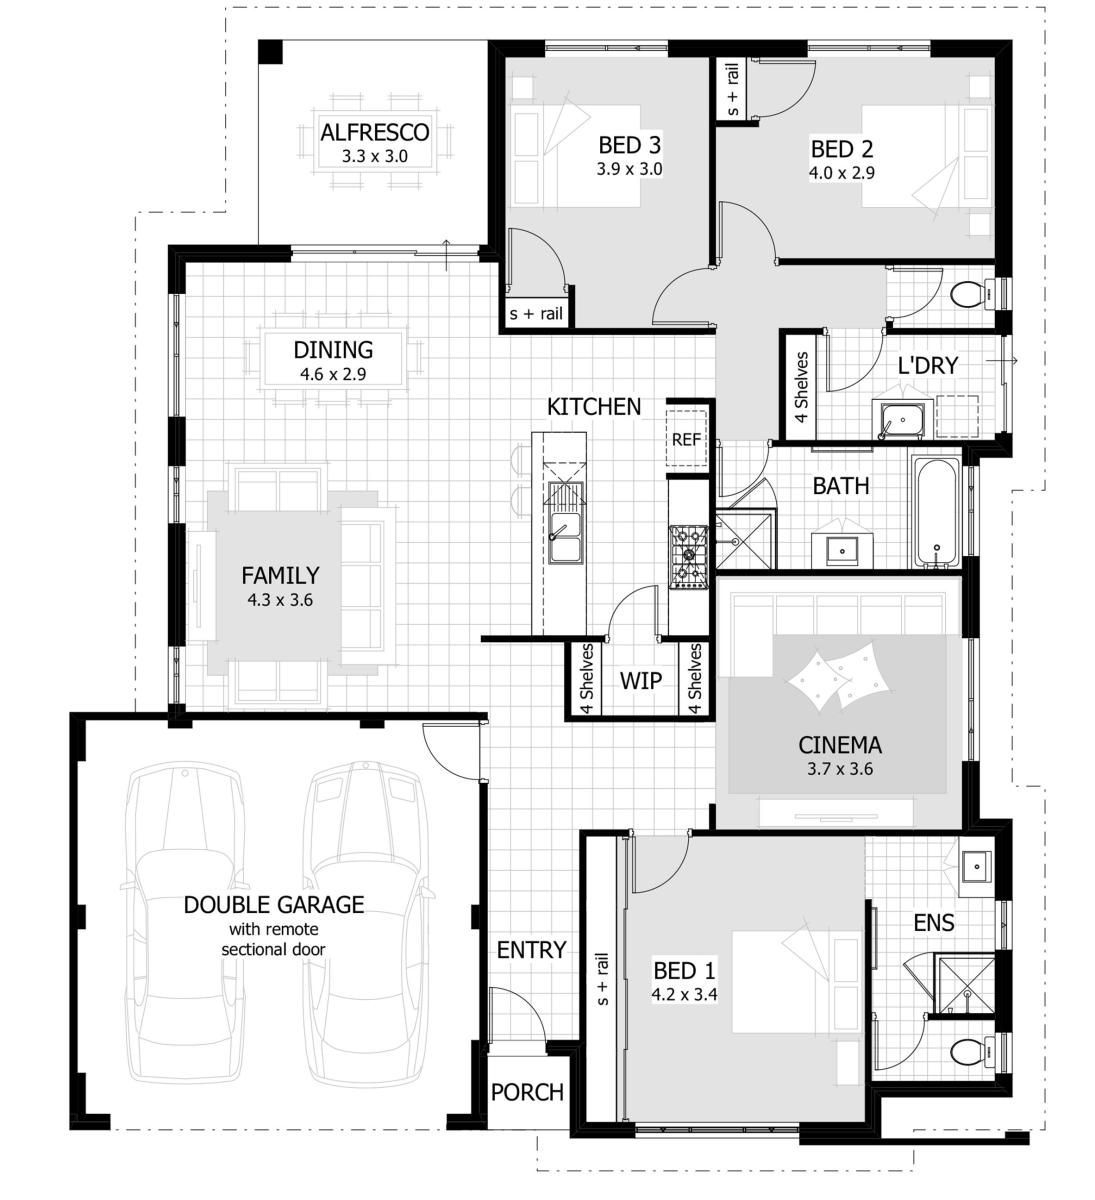 Best Bedroom Home Plans Designs 3 Viralinspirations House Layout Plans Three Bedroom House Plan Small House Floor Plans